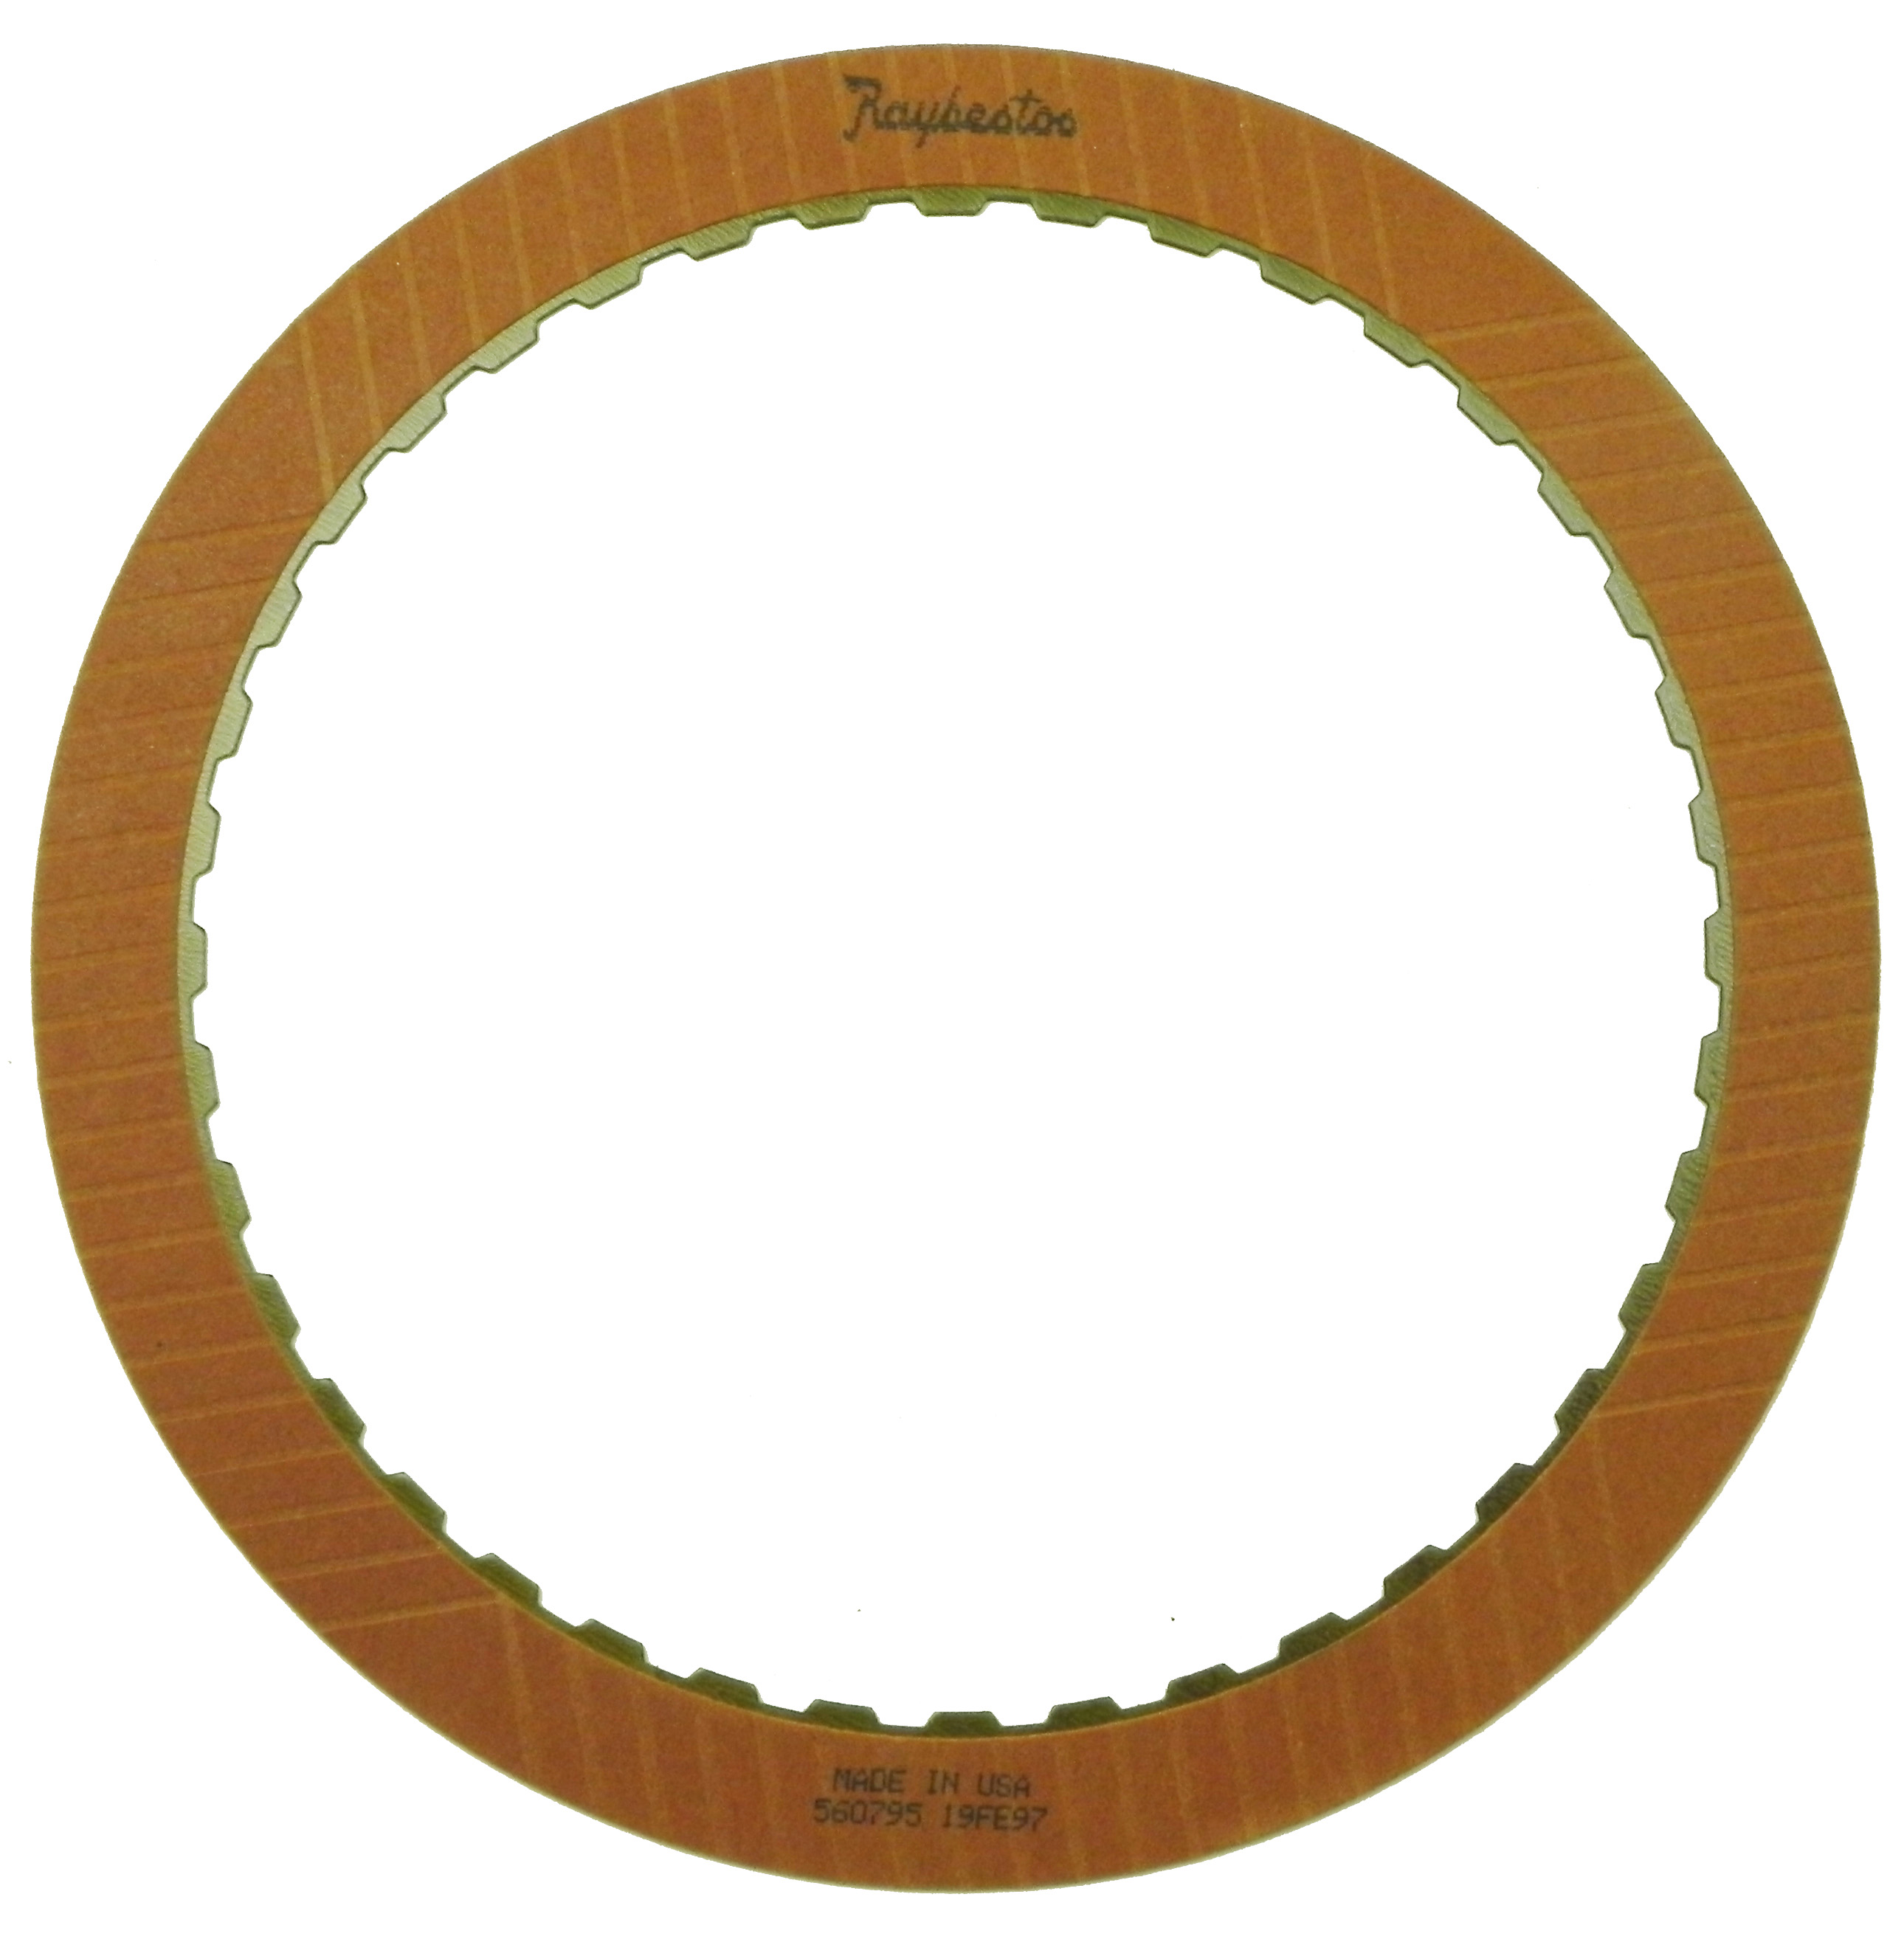 R560795 | 1992-1994 Friction Clutch Plate OE Replacement Intermediate, Reverse (2nd Design)